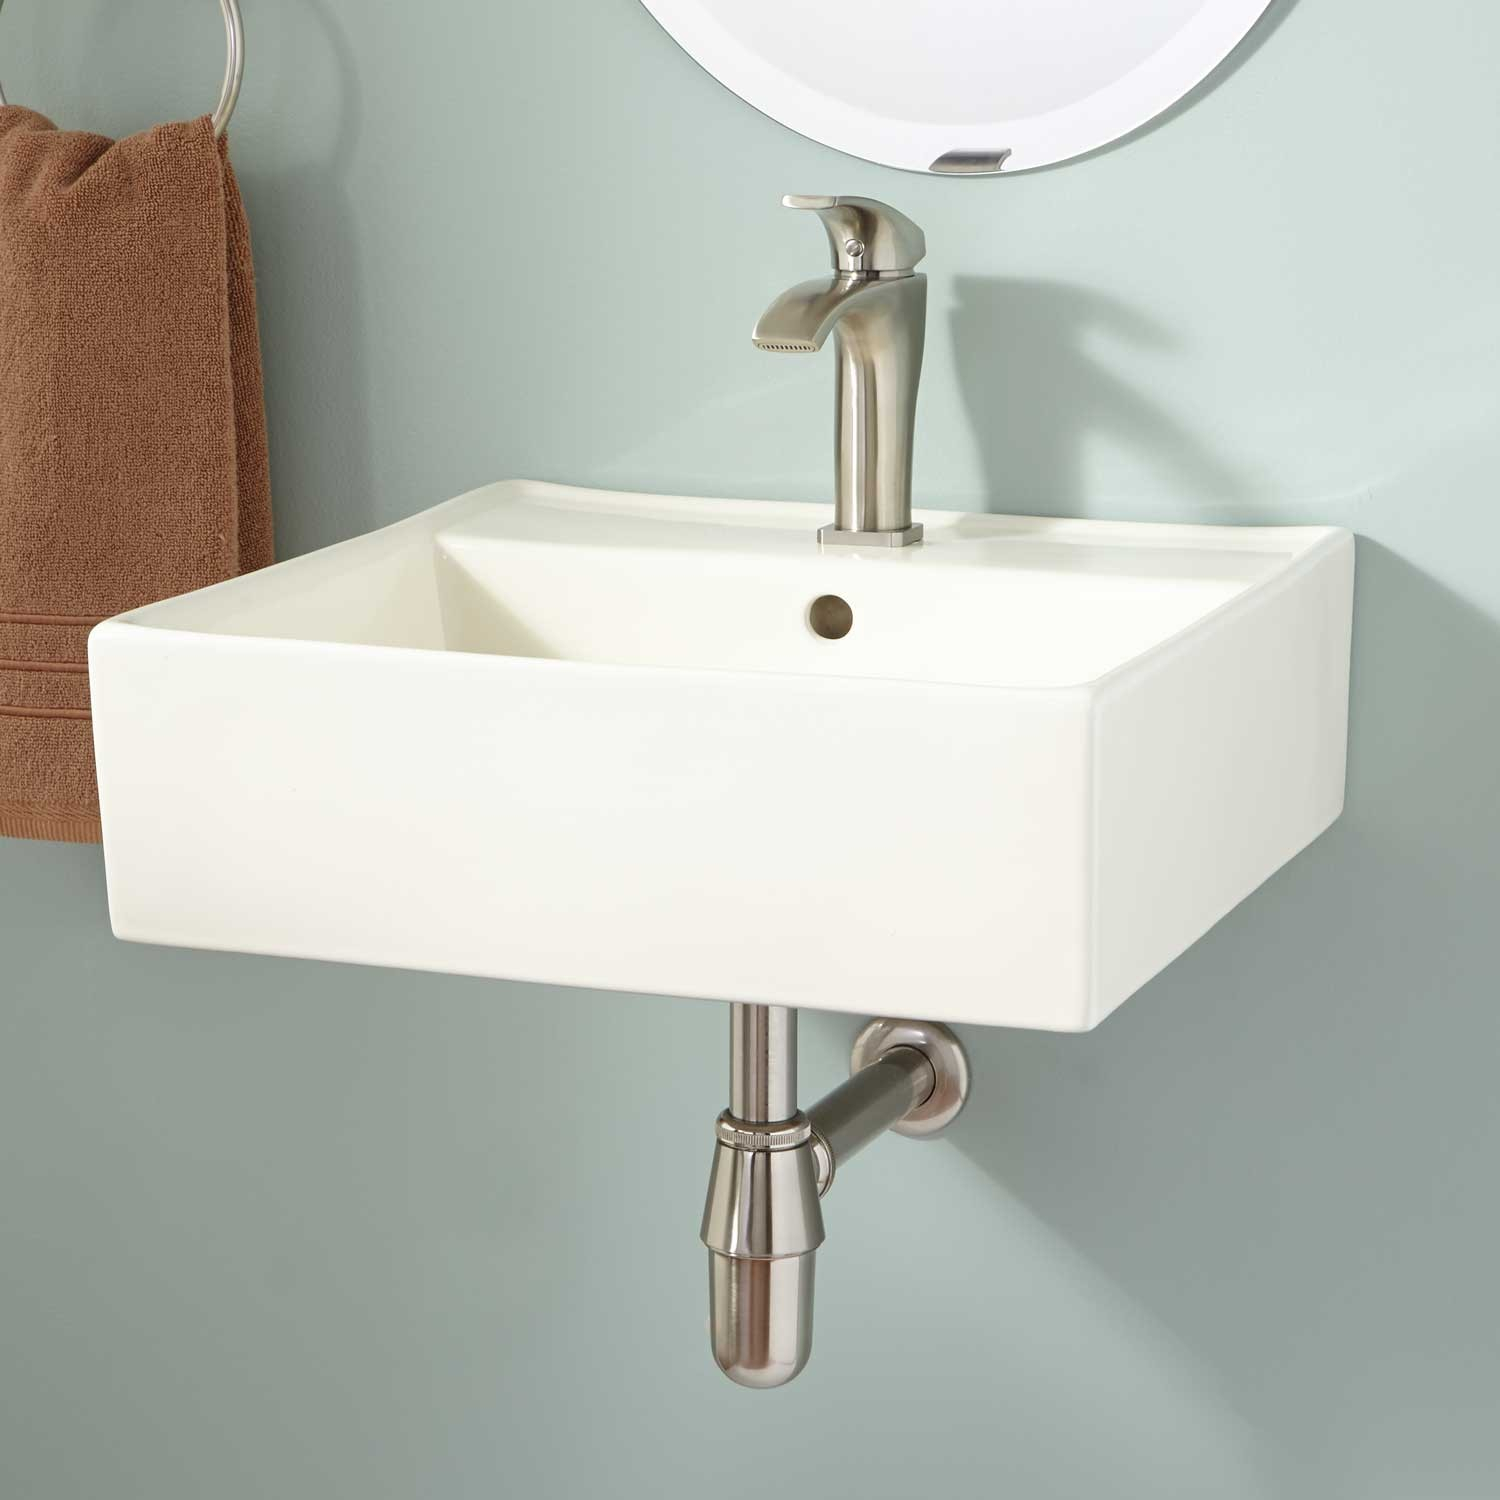 Fancy Small Wall Mounted Bathroom Sinks Modern Best 25 Ideas On Pinterest pertaining to Small Bathroom Sinks Wall Mount